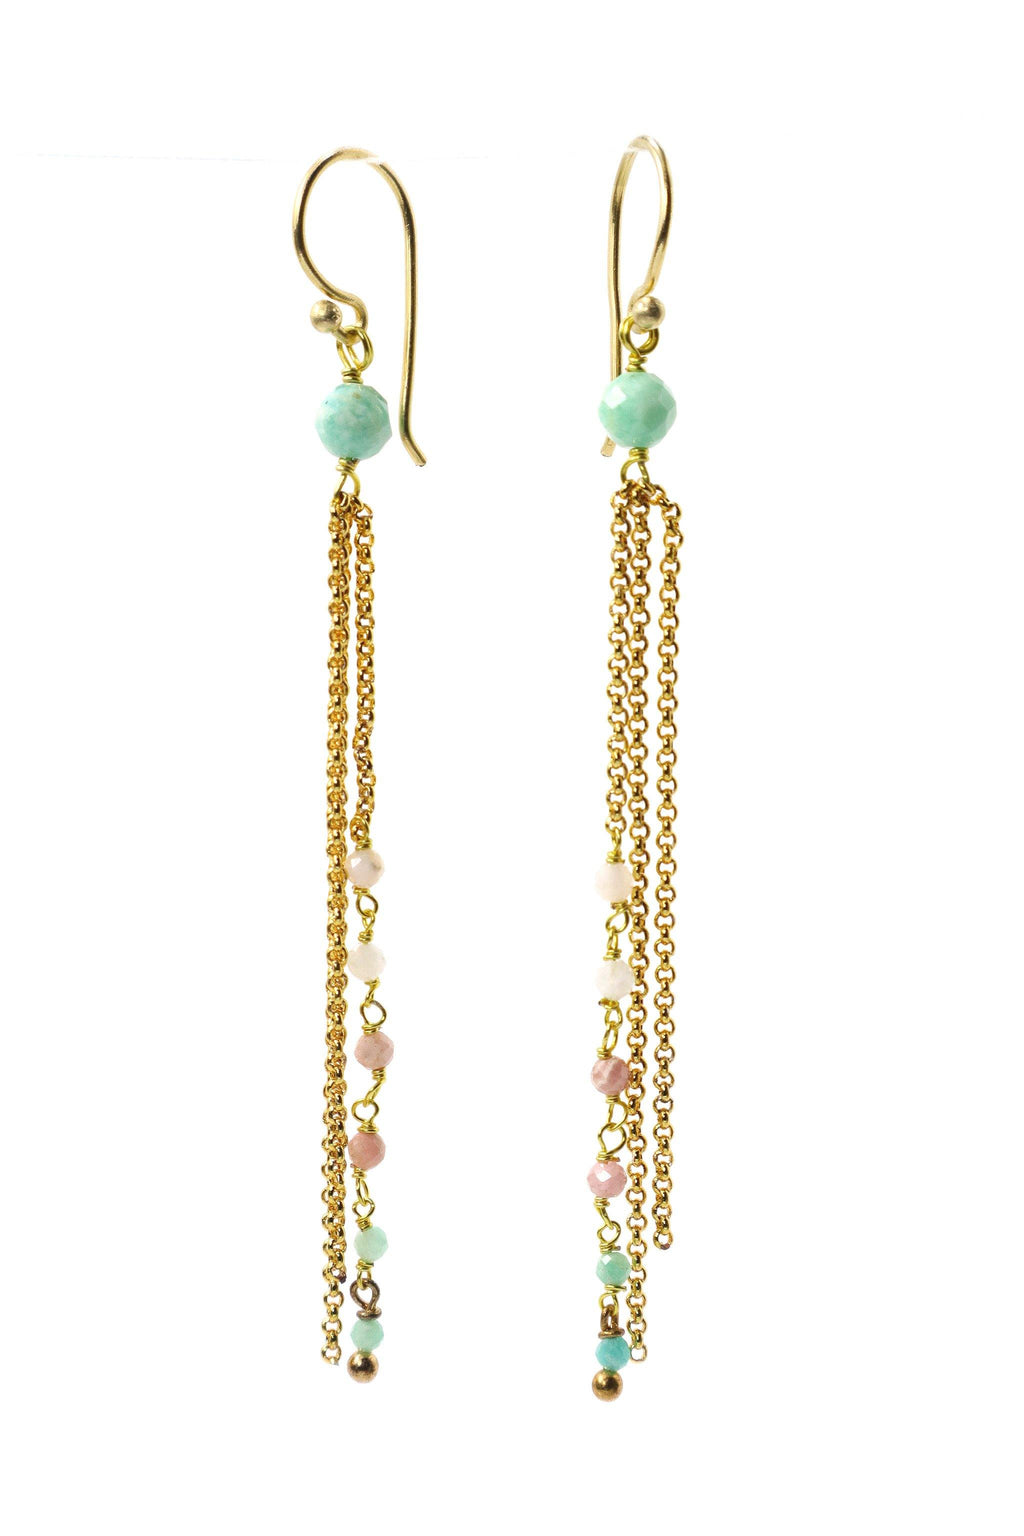 These earrings are a triple strand of rosary style gemstones and chains. The round agate, strawberry quartz, aquamarine, and apatite are wired in a graduated tone of light to dark. These earrings are handmade with love in Thailand. This is a Fair Trade Product.